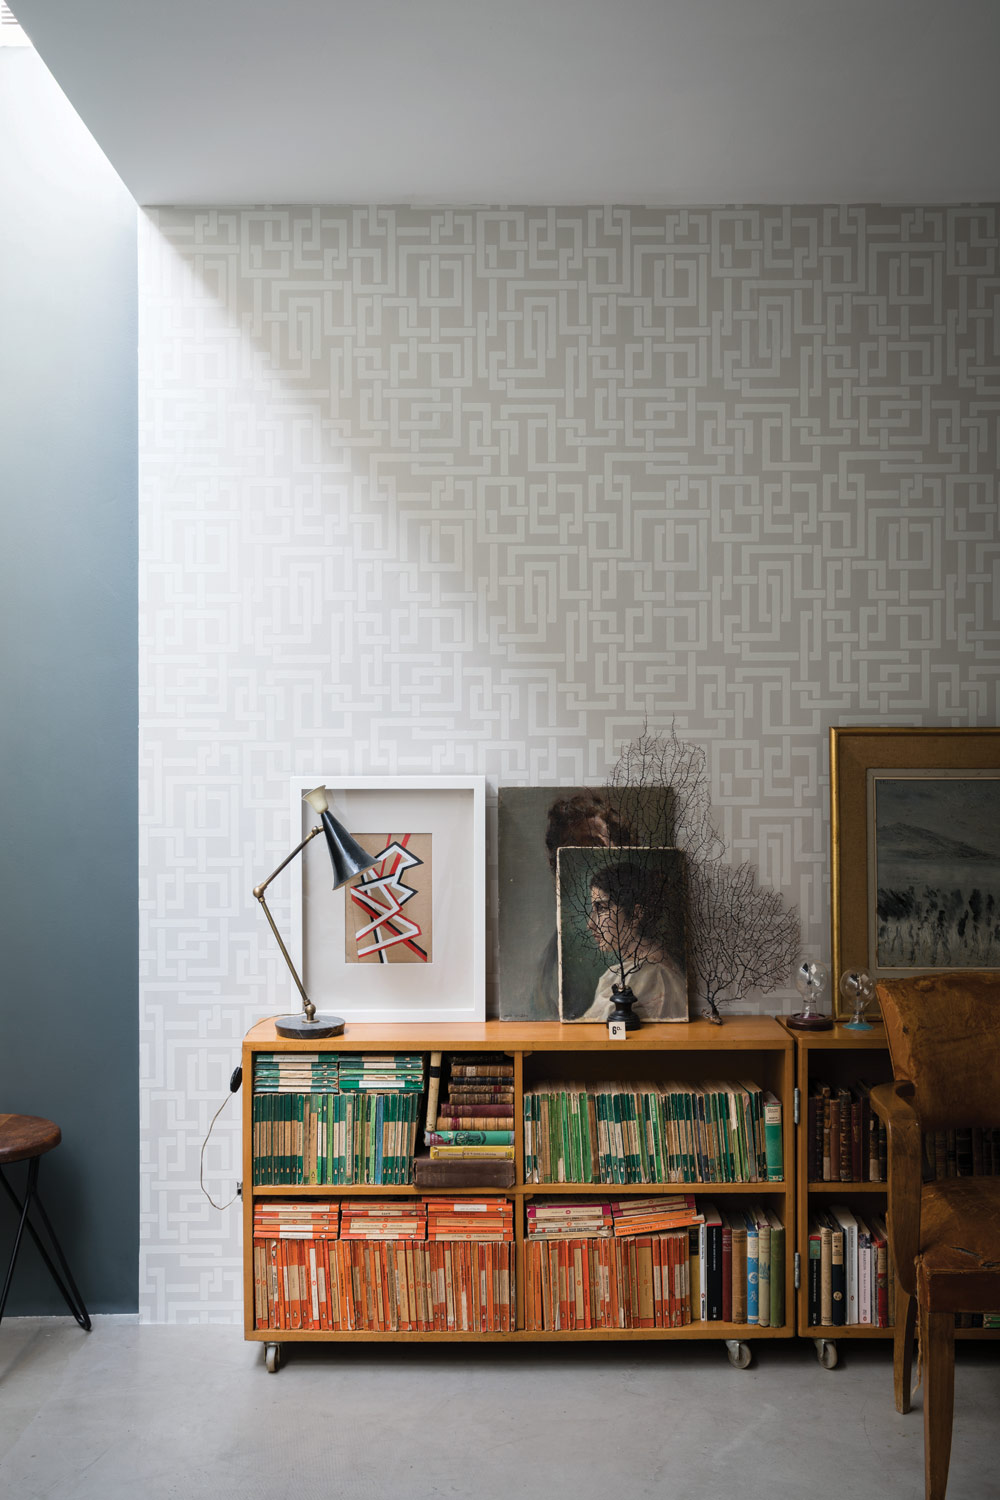 Farrow & Ball Enigma BP 5501